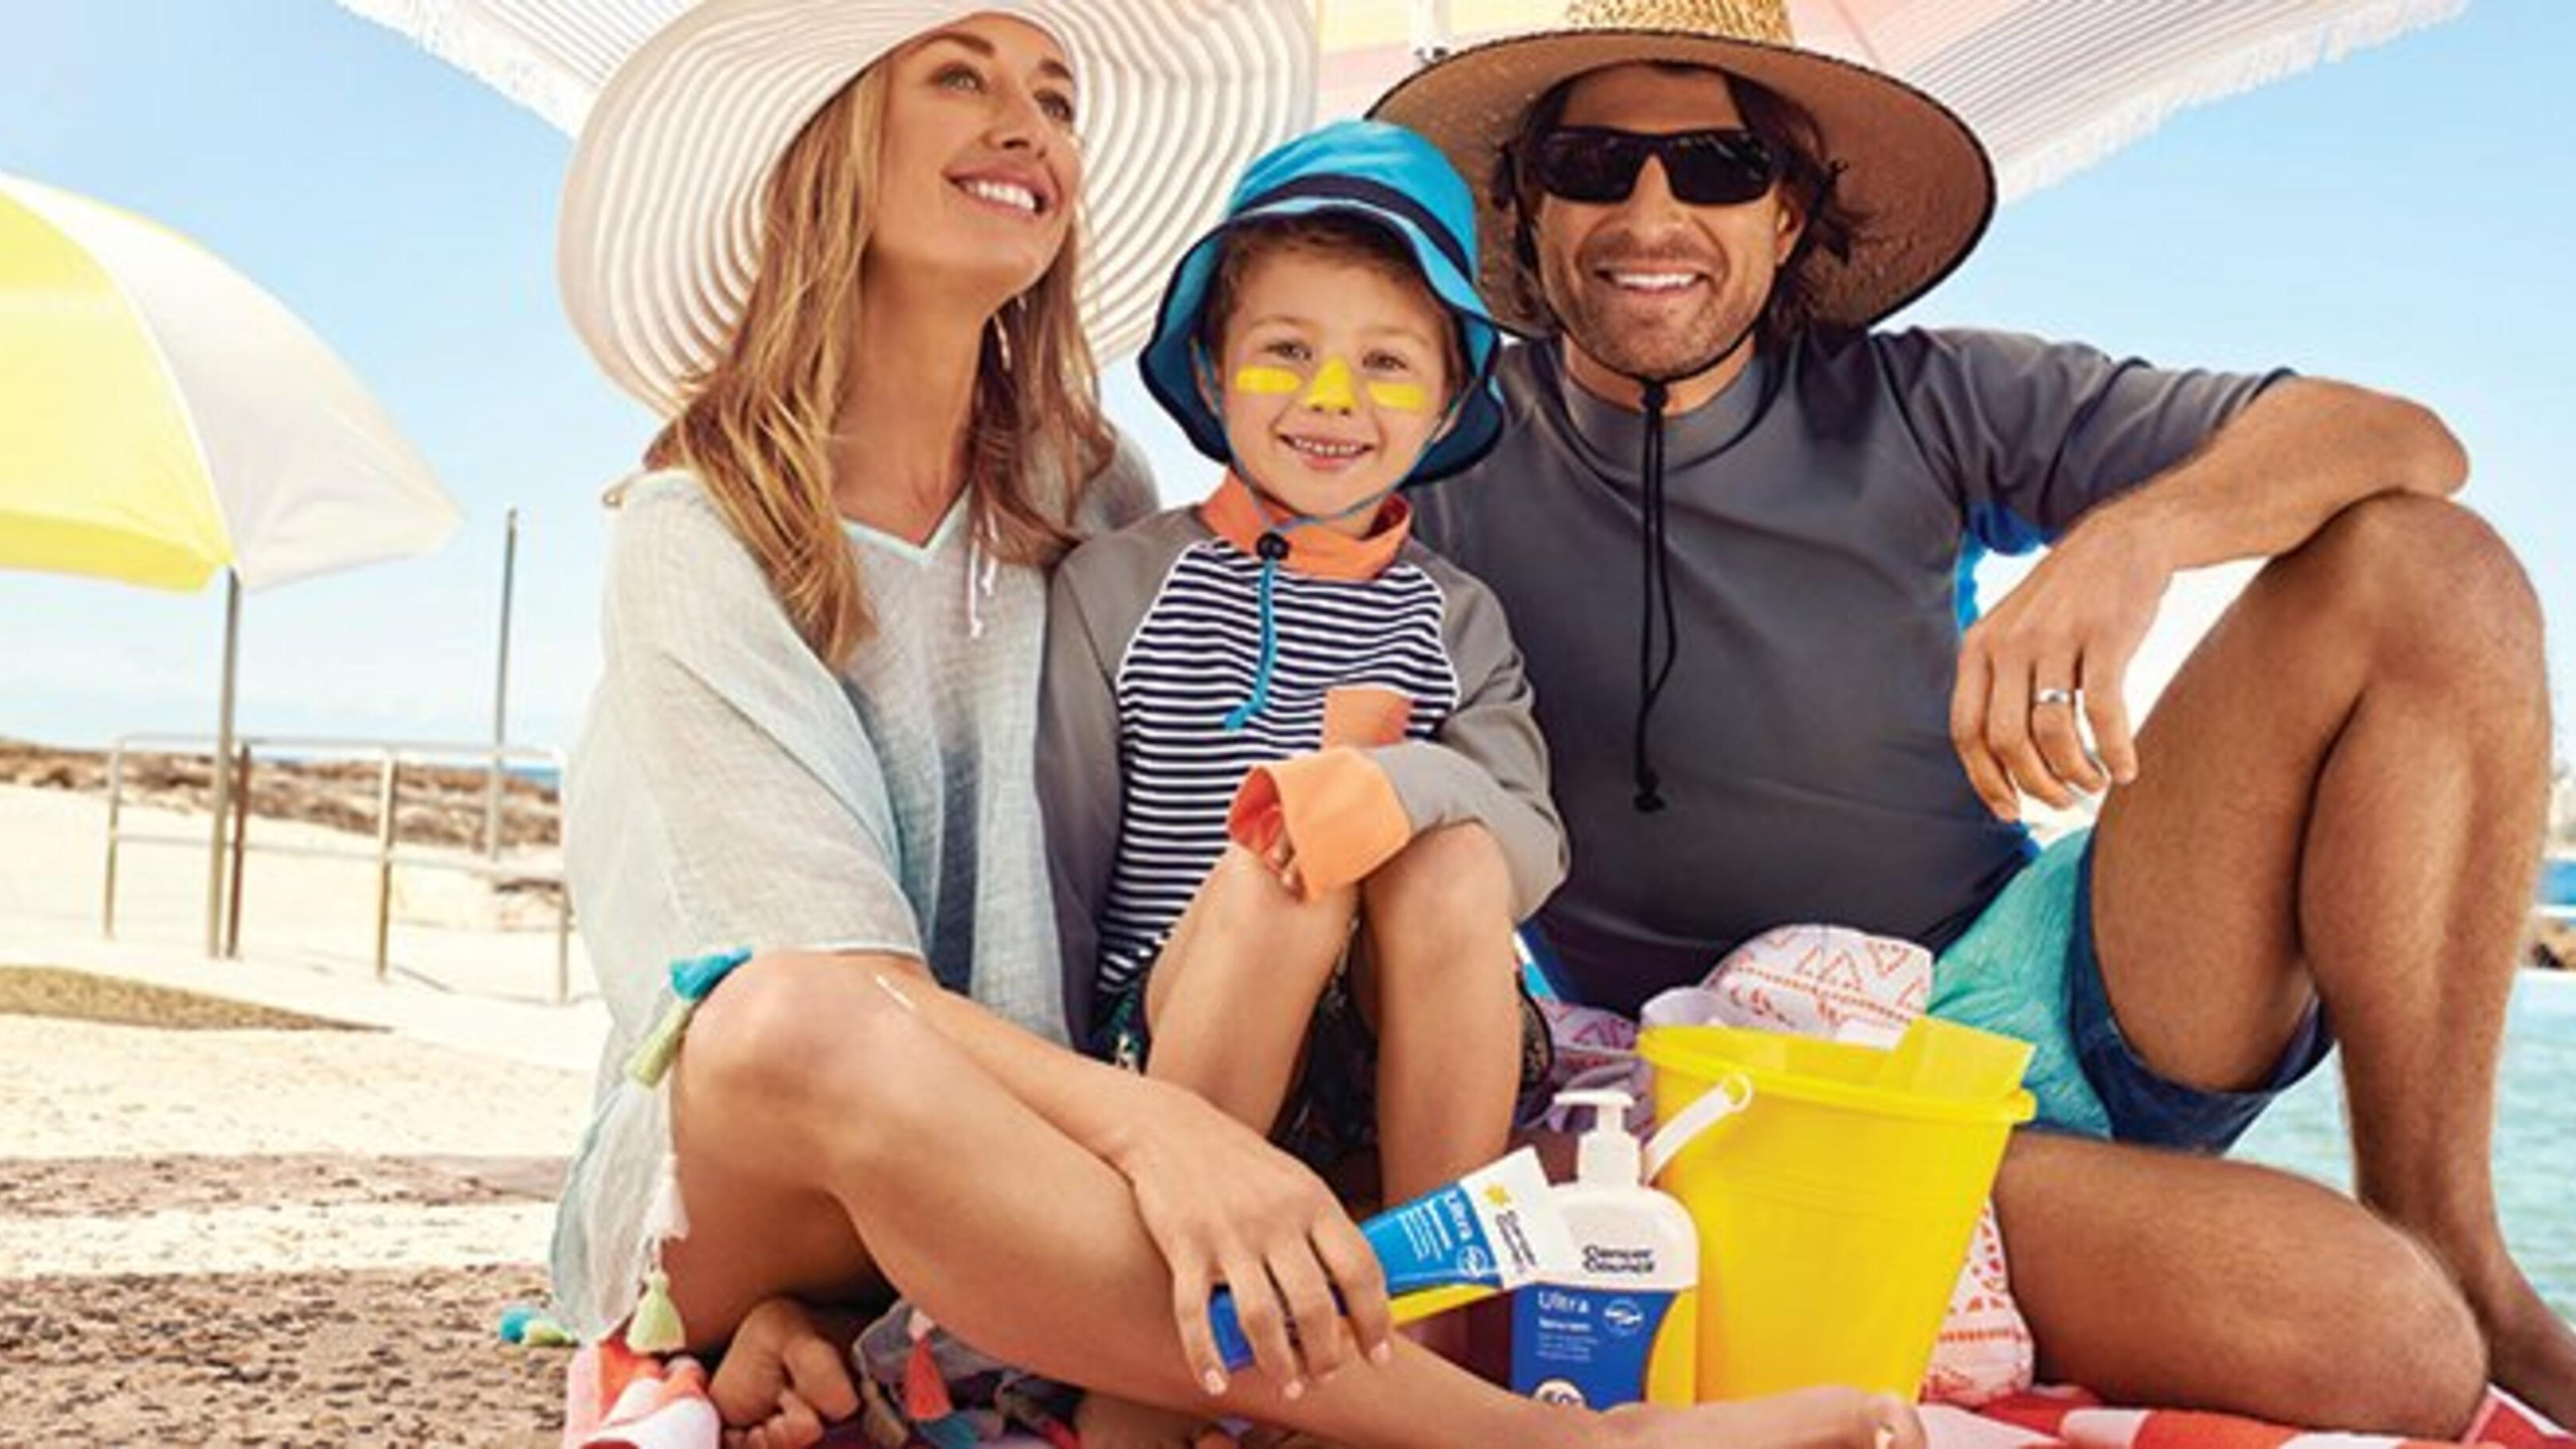 Woman, man and child at the beach wearing sunscreen and hats